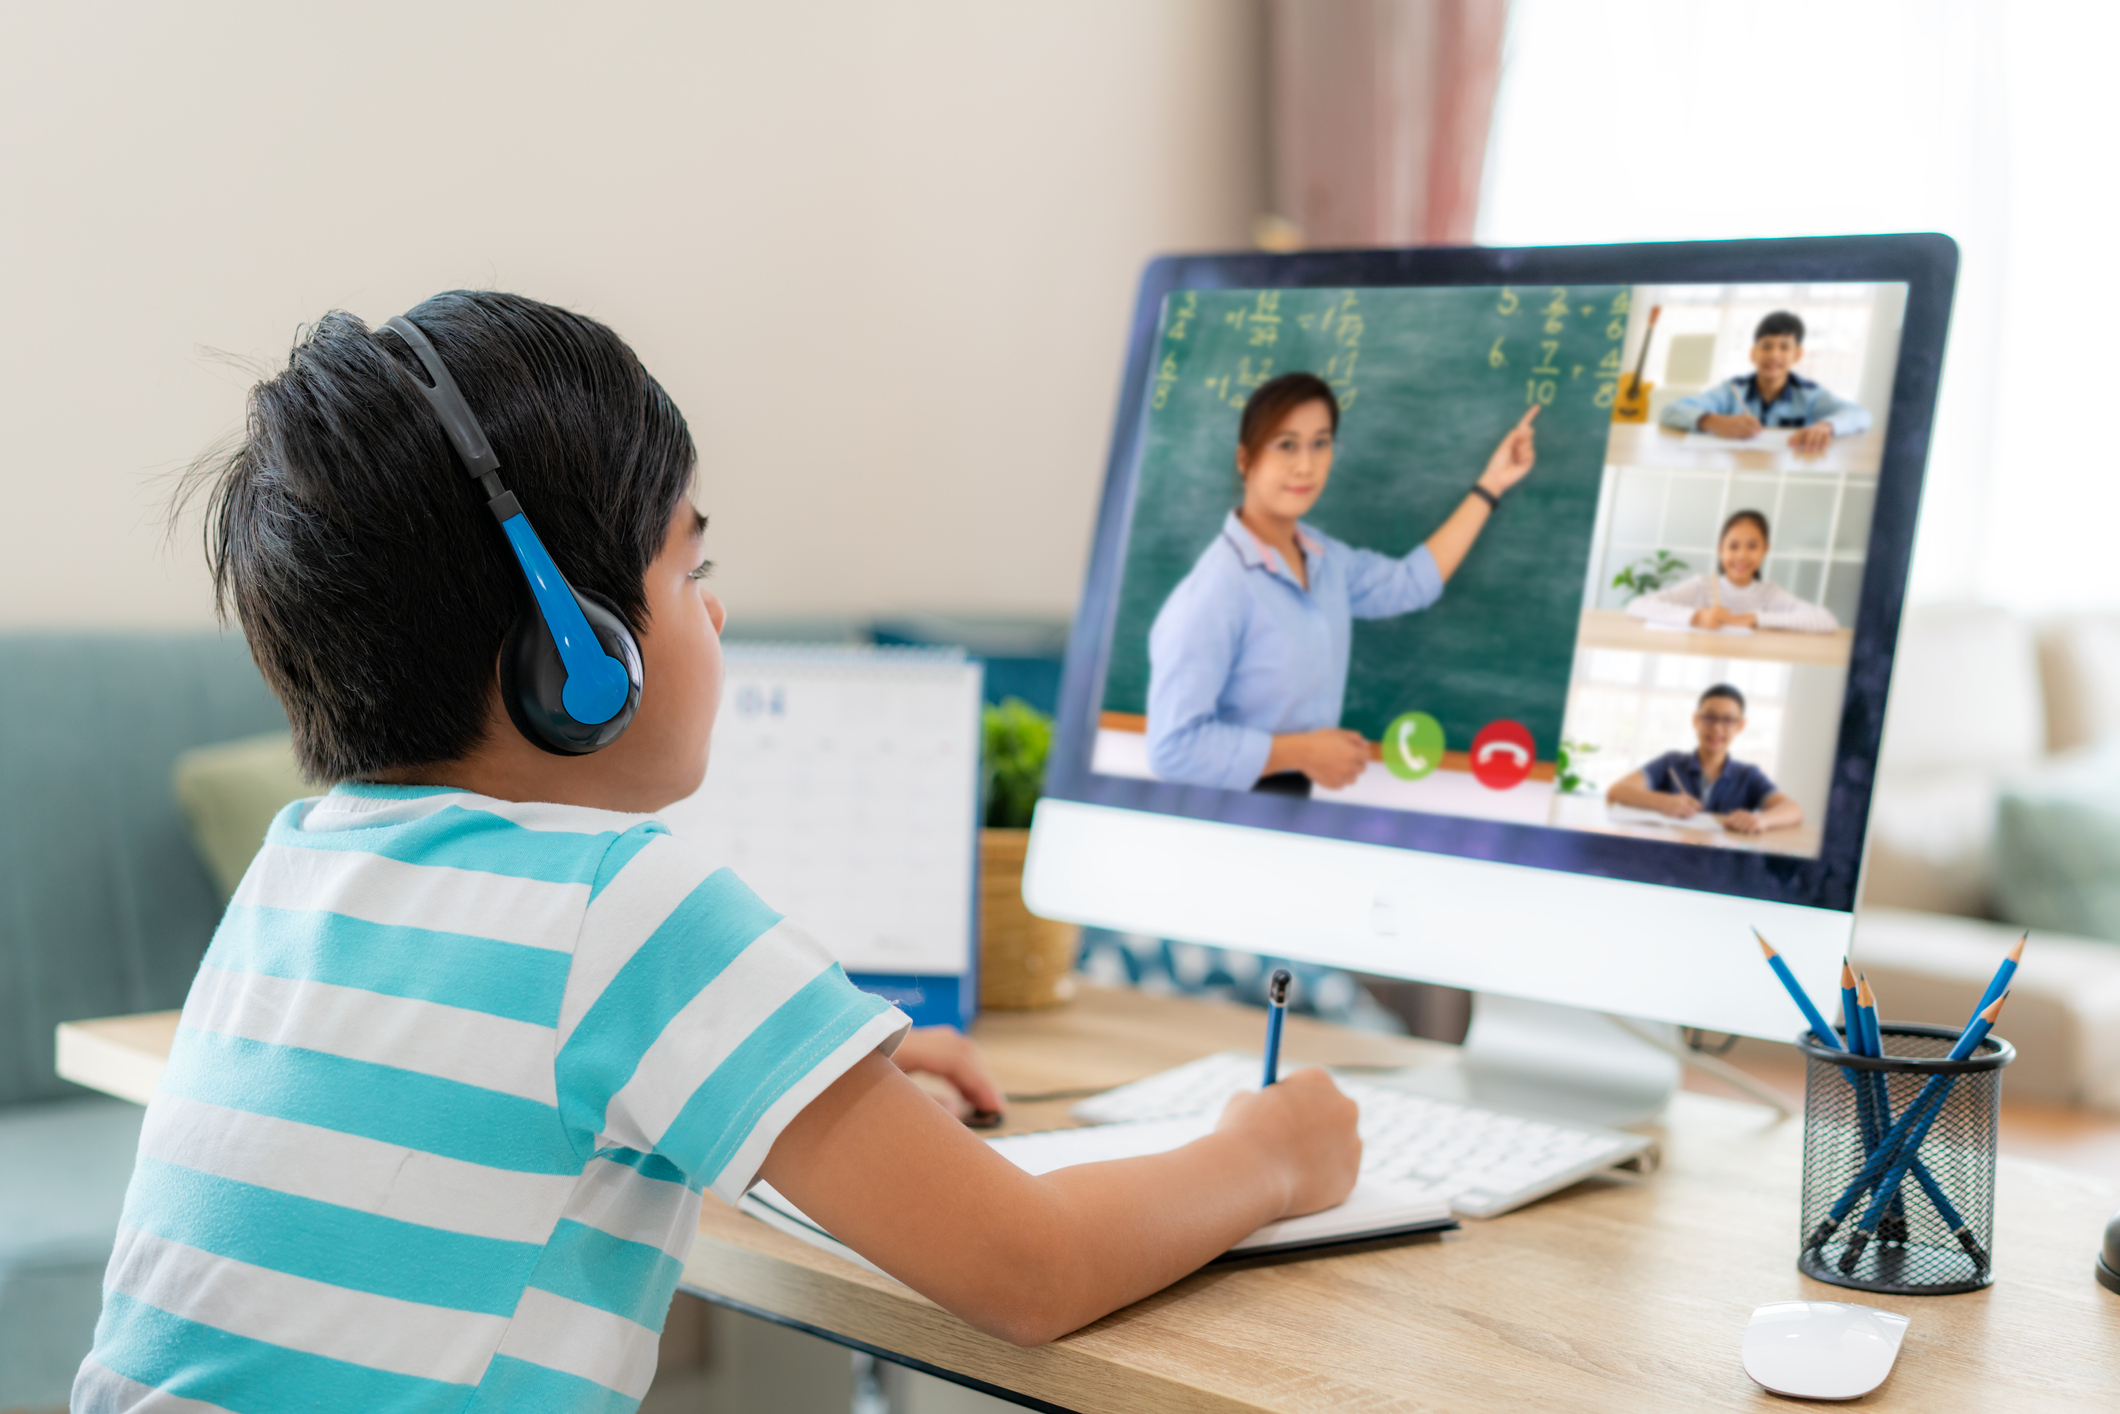 Asian boy student video conference e-learning with teacher and classmates on computer in living room at home.